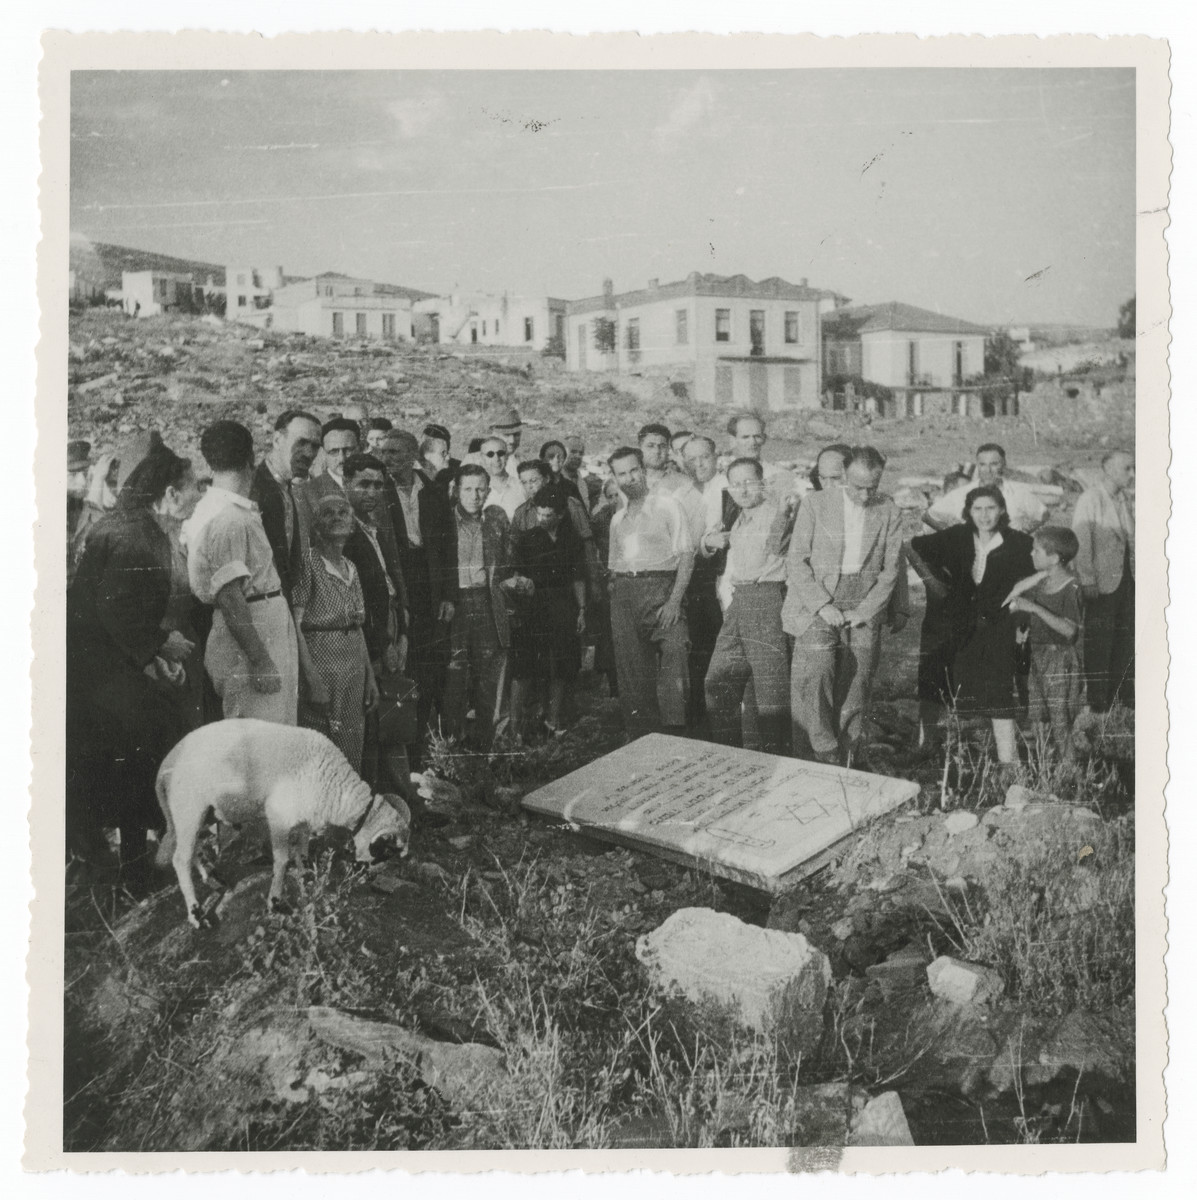 Greek survivors gather for a memorial service at the site of the desecrated Jewish cemetery in Salonika.